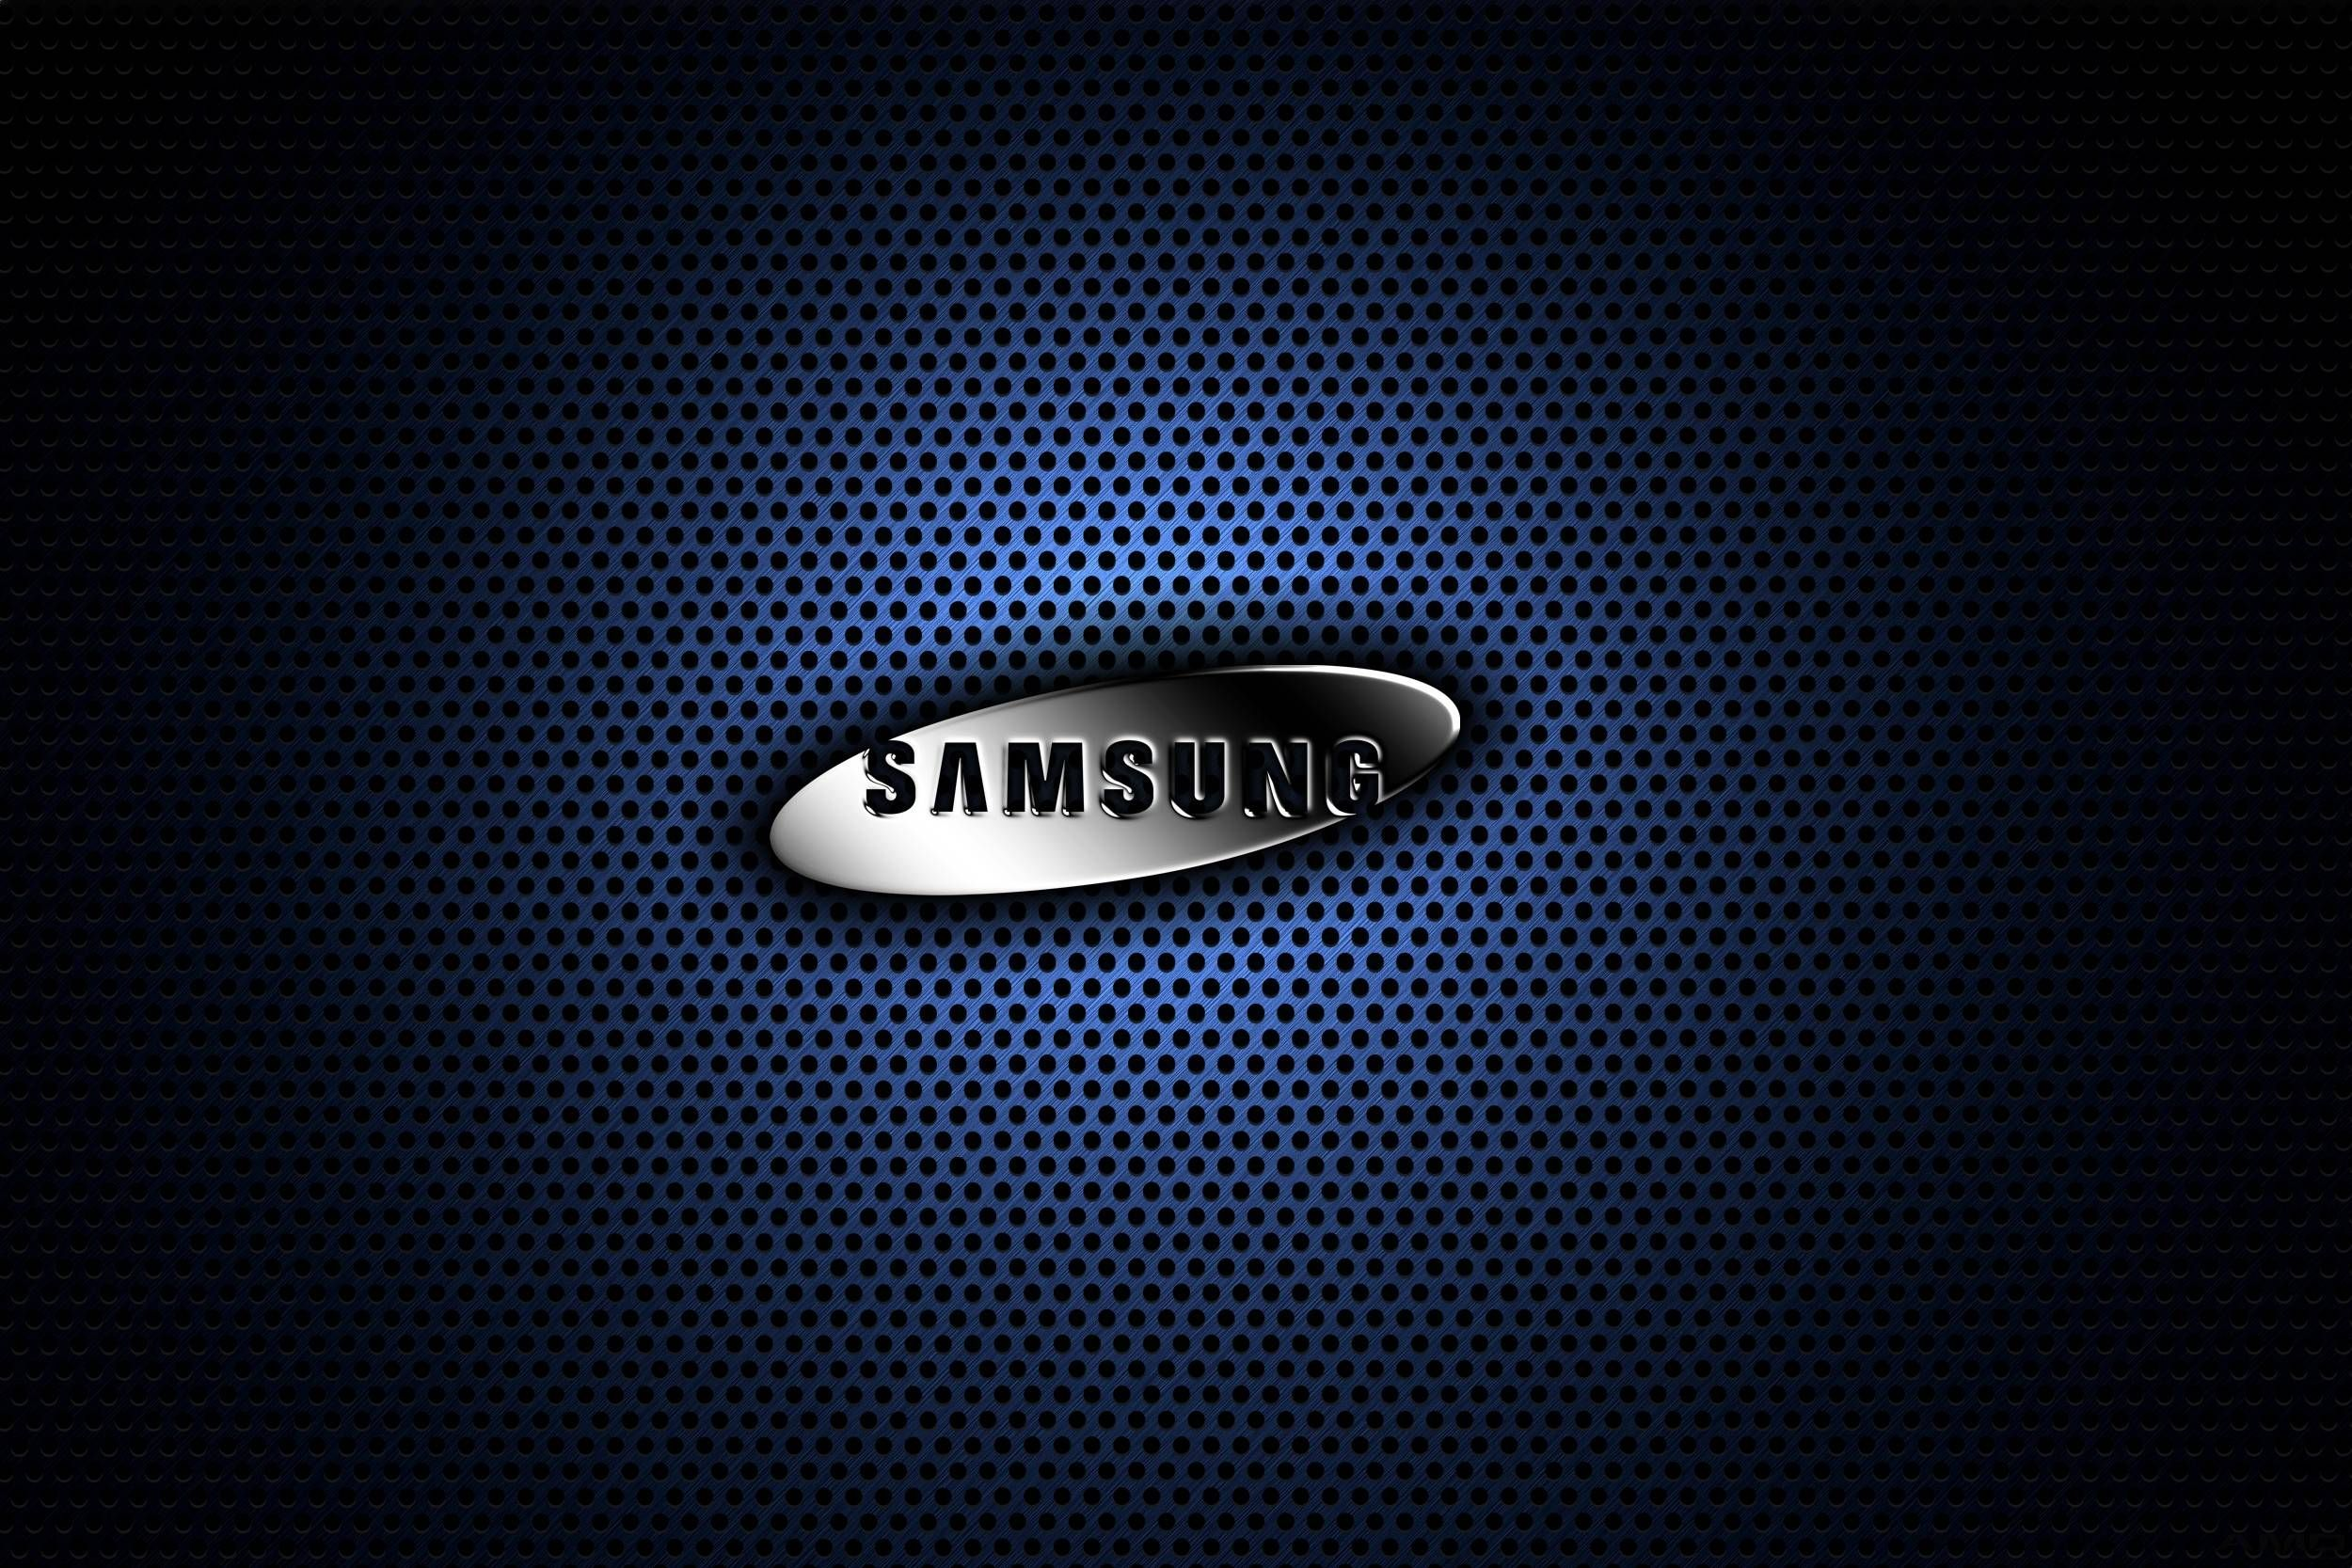 Samsung Logo Wallpapers Wallpaper Обои для телефона